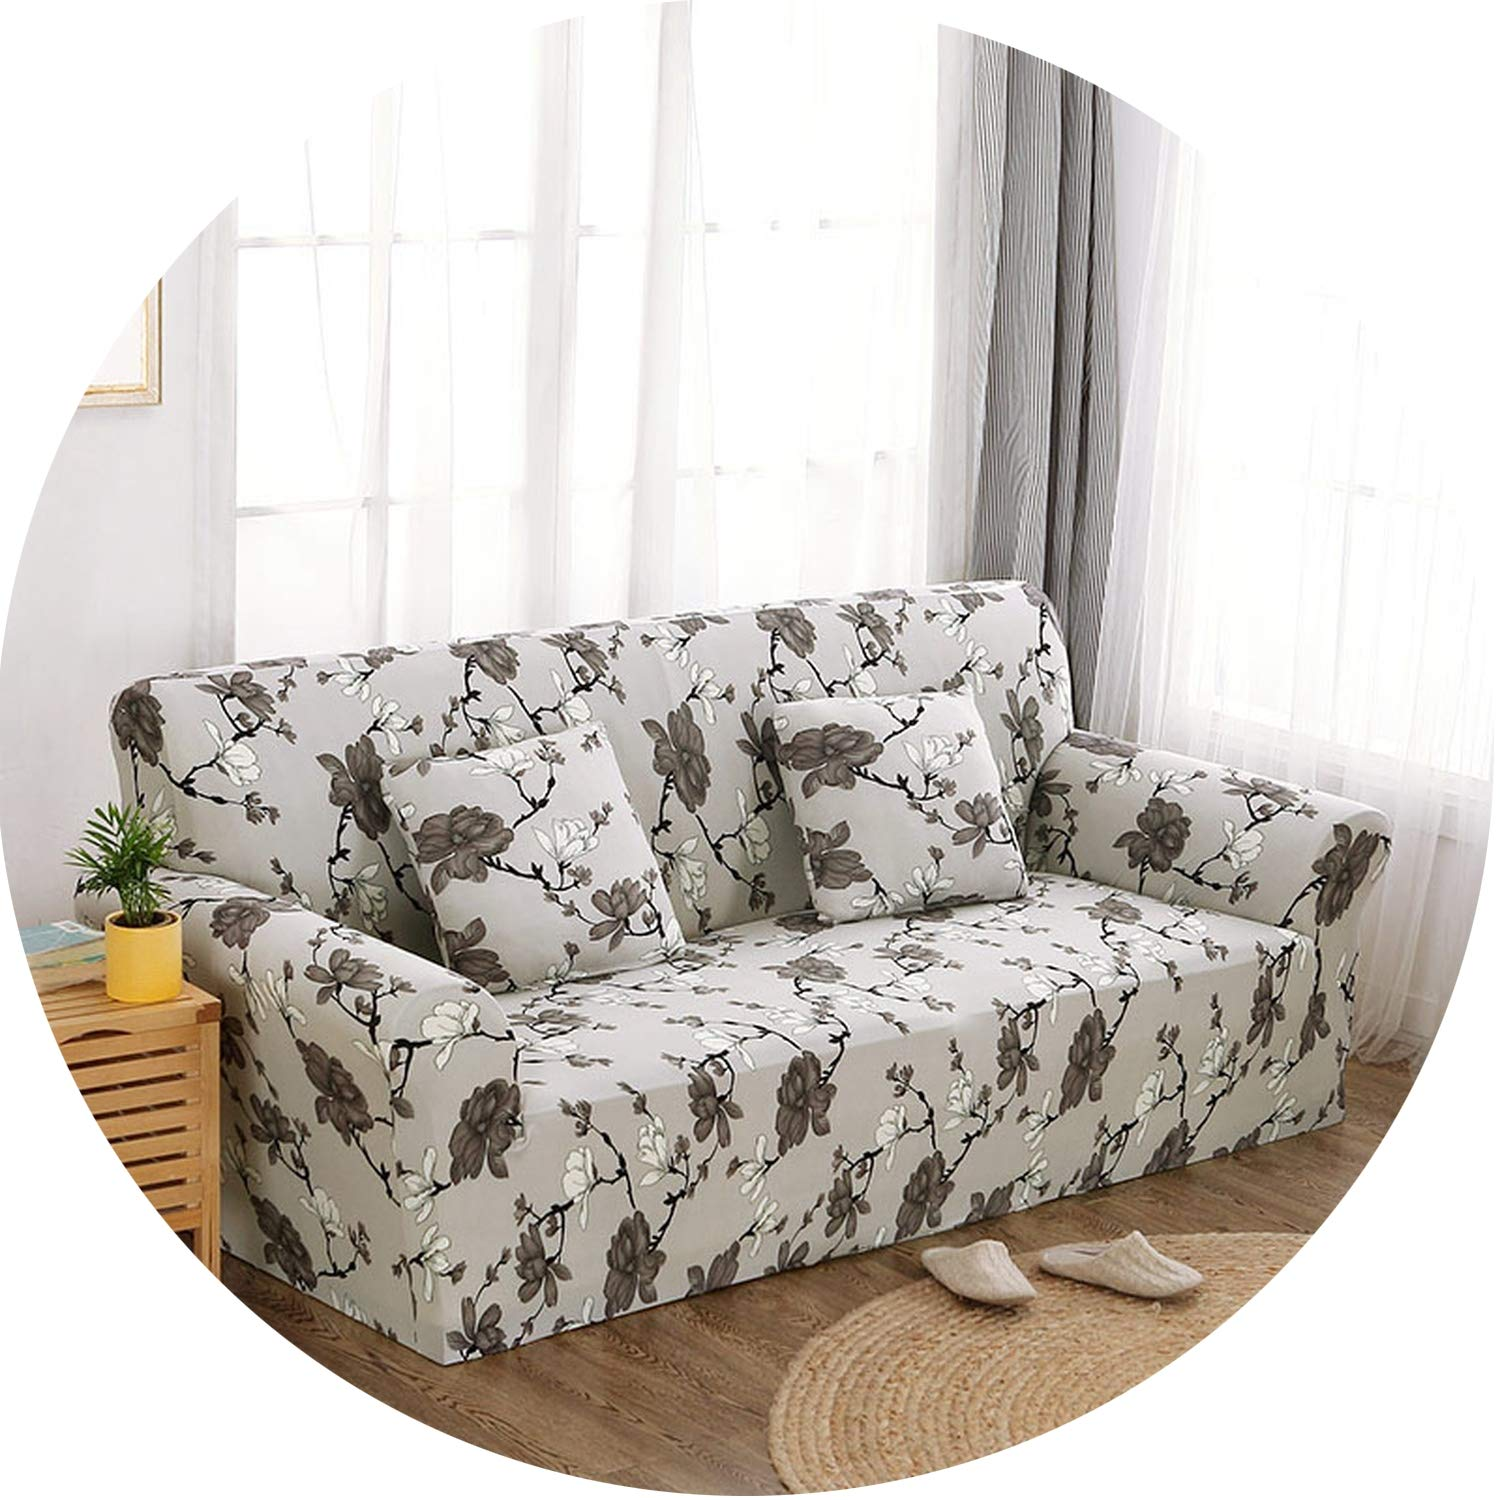 Floral Sofa Cover Slipcovers Elastic Stretch Tight Wrap Sofa Couch Cover,Color 20,3-Seater 190-230Cm